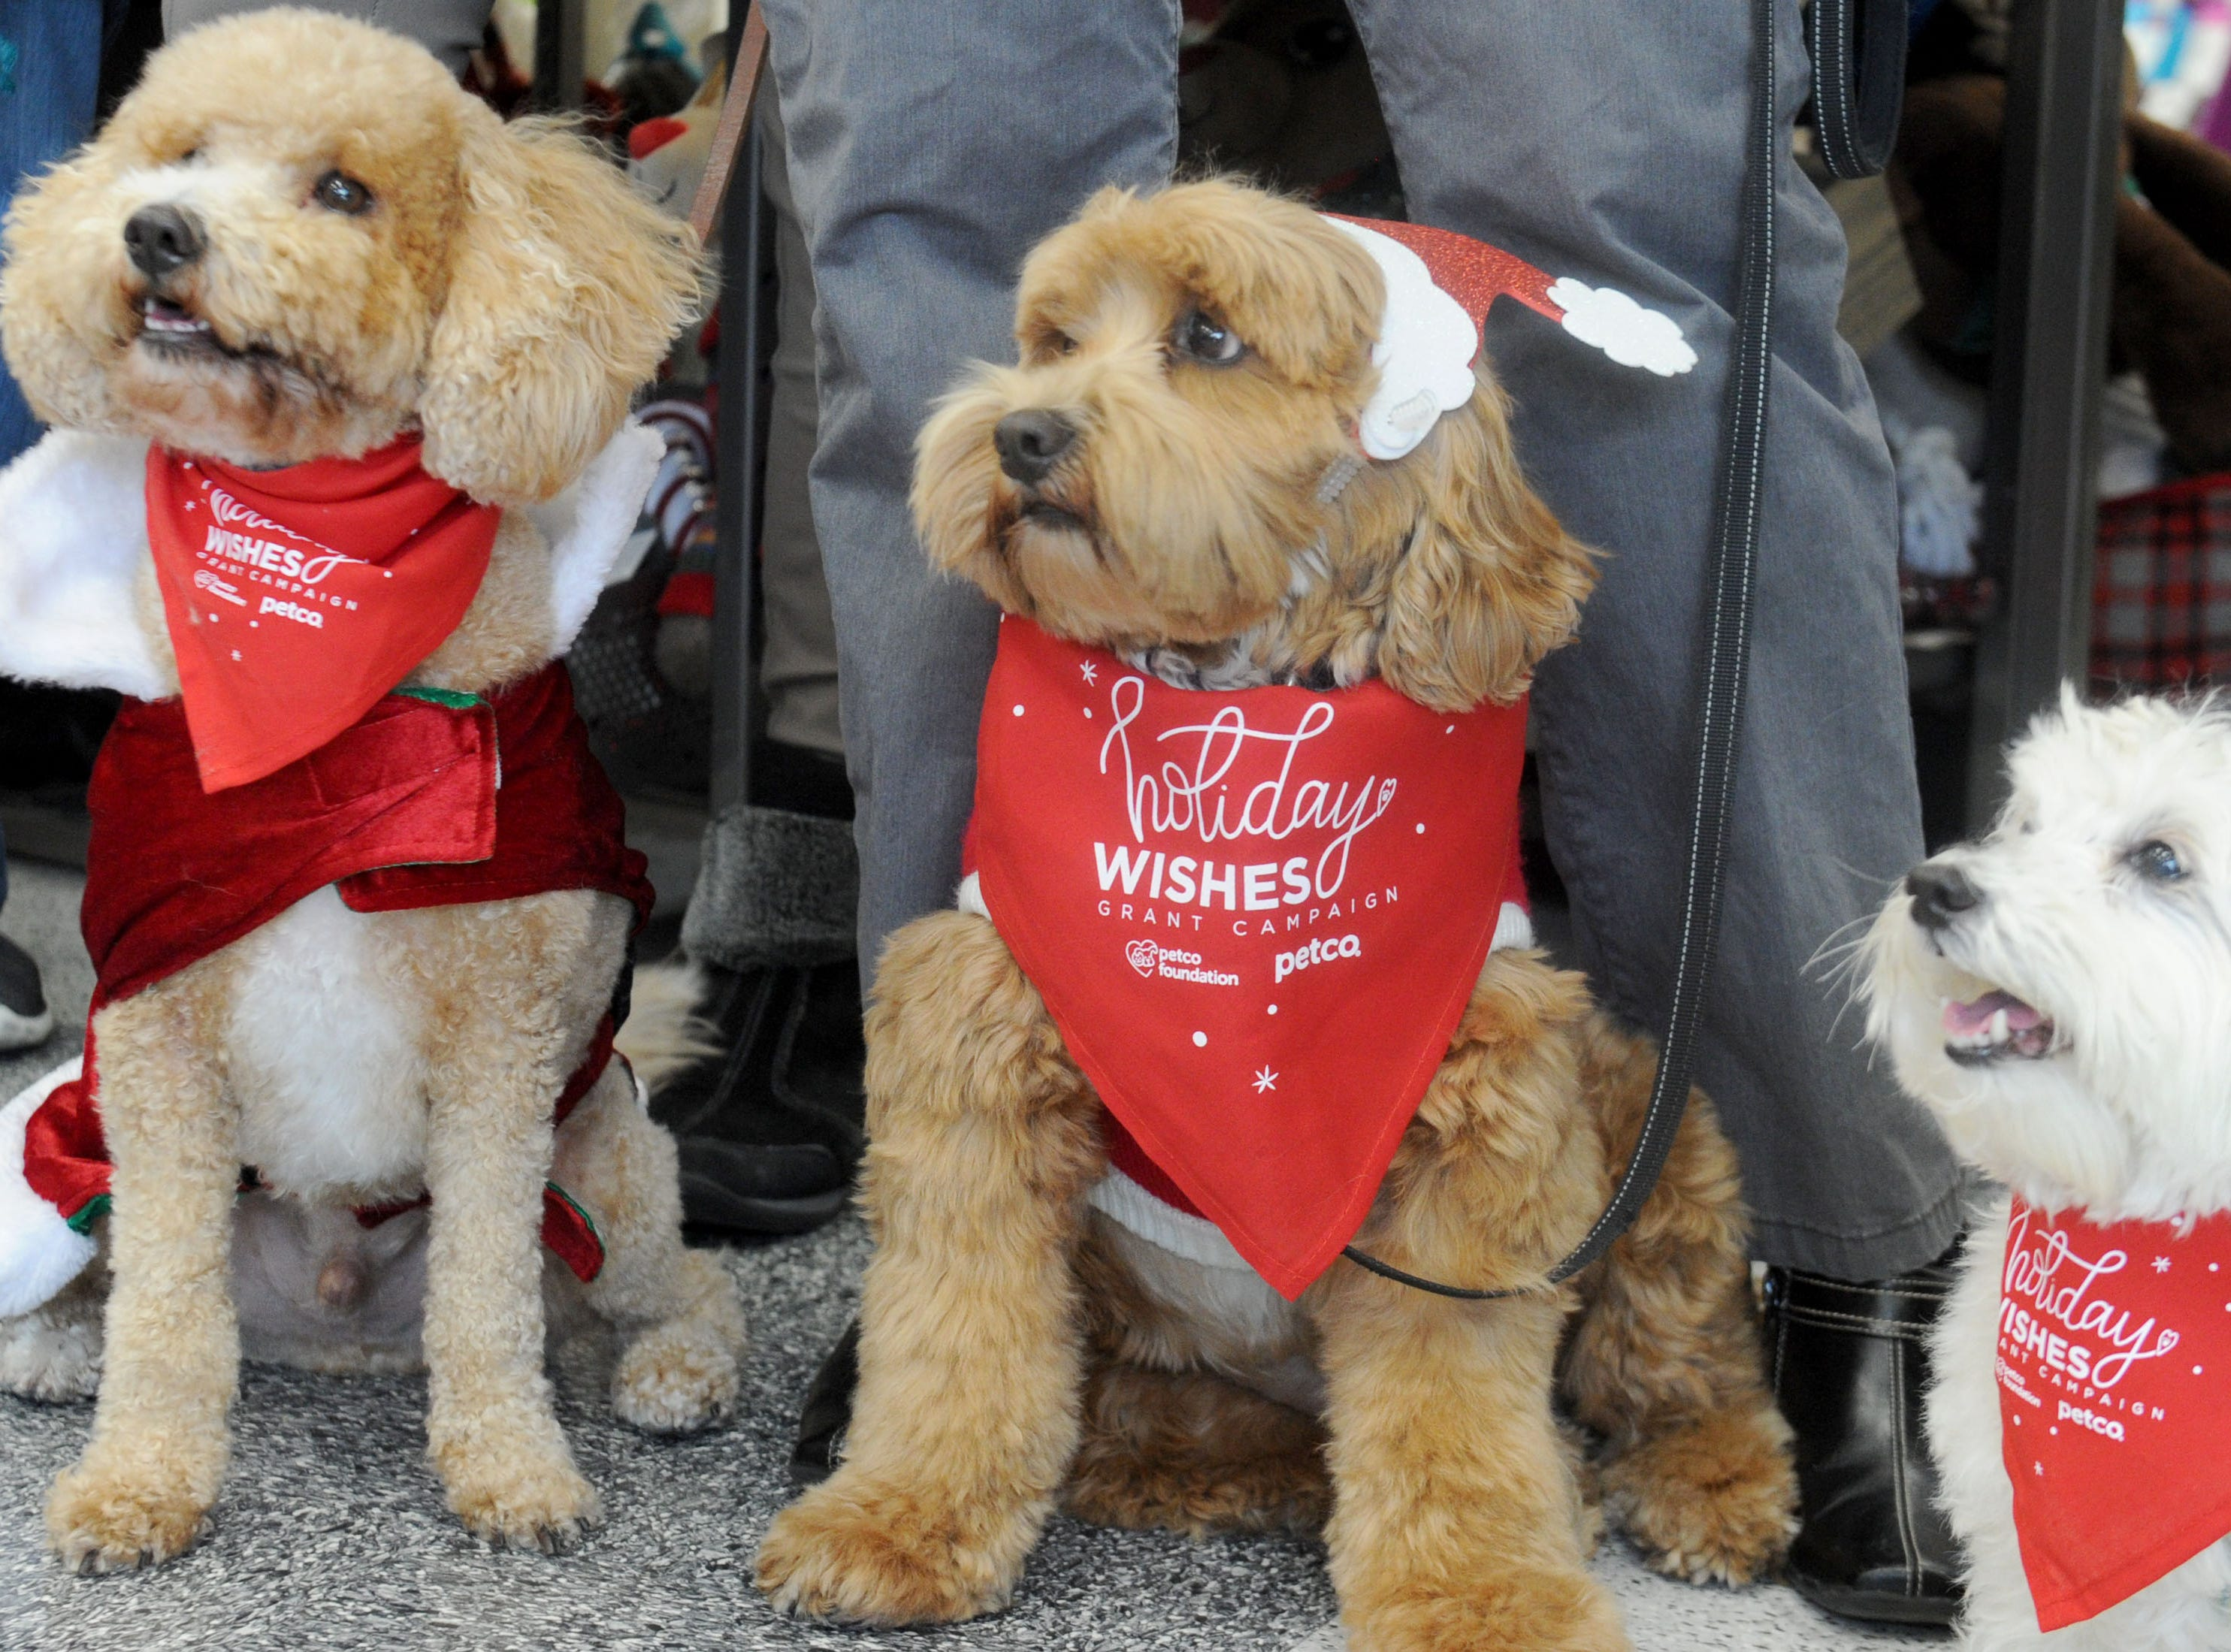 "From left, Chenko, Brady and Petey pose at the VIP Dog Teams event. Chenko  was named after Ventura County sheriff's Deputy Yevhen ""Eugene"" Kostiuchenko, who died in the line of duty. His widow, Maura Kelley, recently adopted the dog from the Camarillo-based nonprofit VIP Dog Teams, which received a $5,000 grant as part of the Petco Foundation 2018 Holiday Wishes campaign."